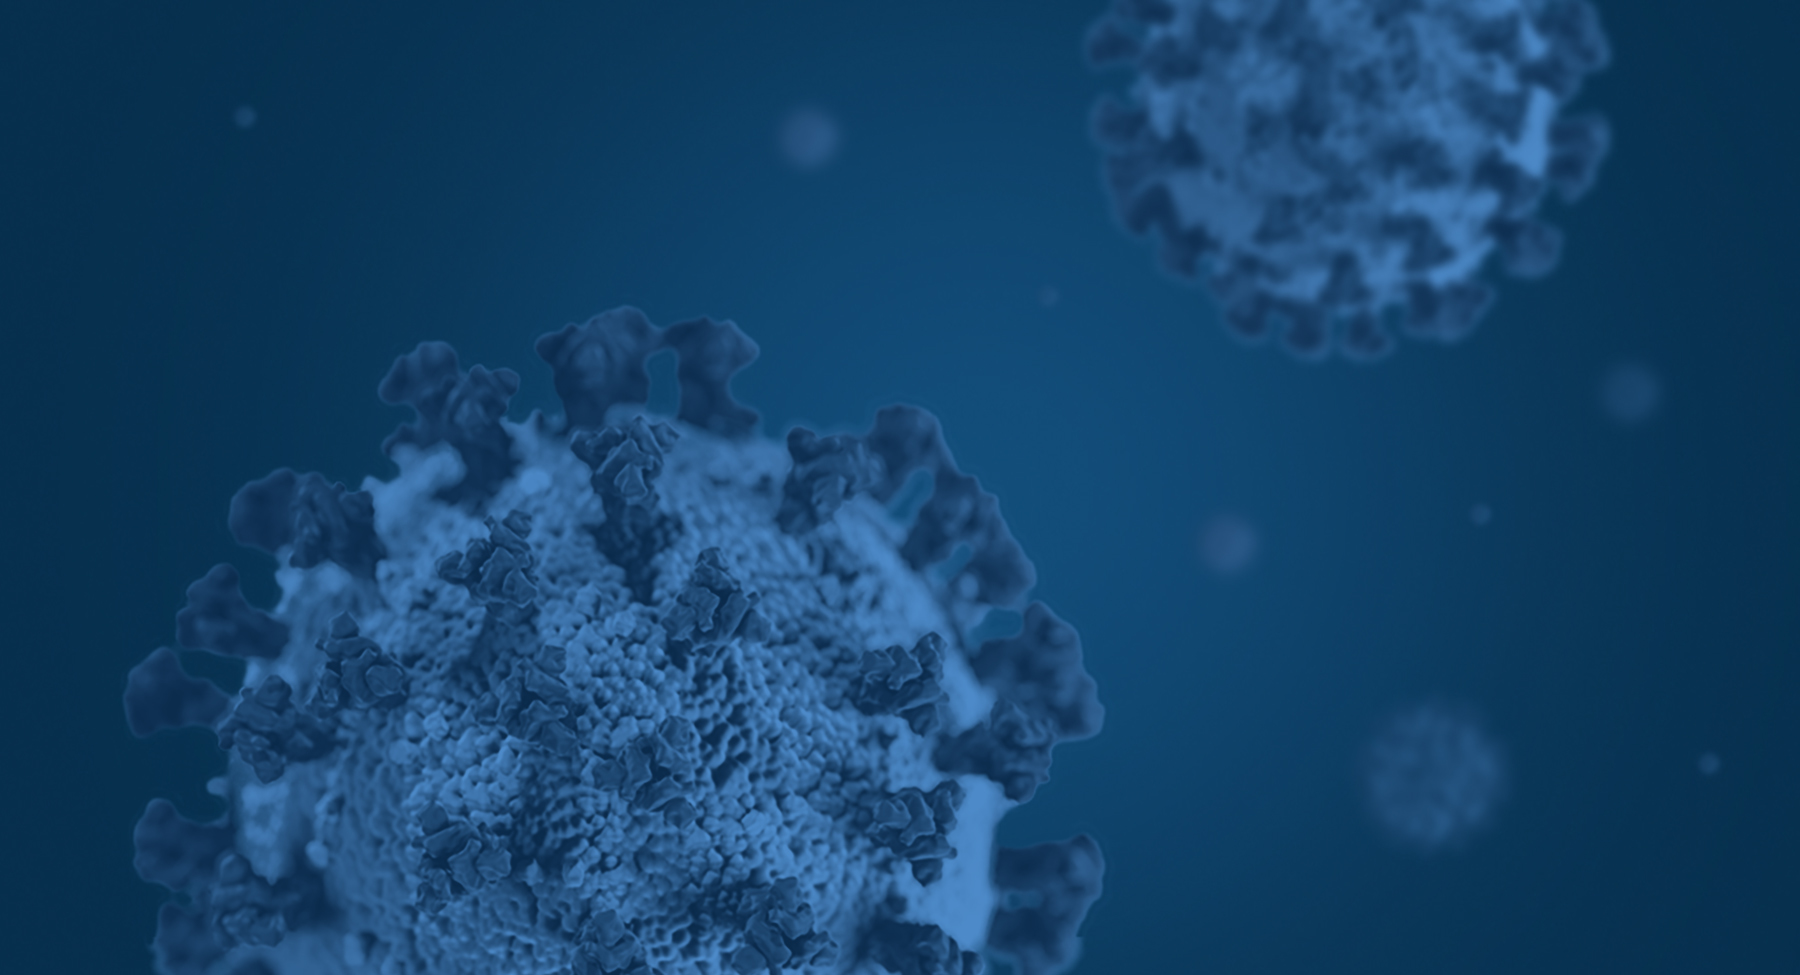 Blue graphic of Coronavirus (COV-19) cells